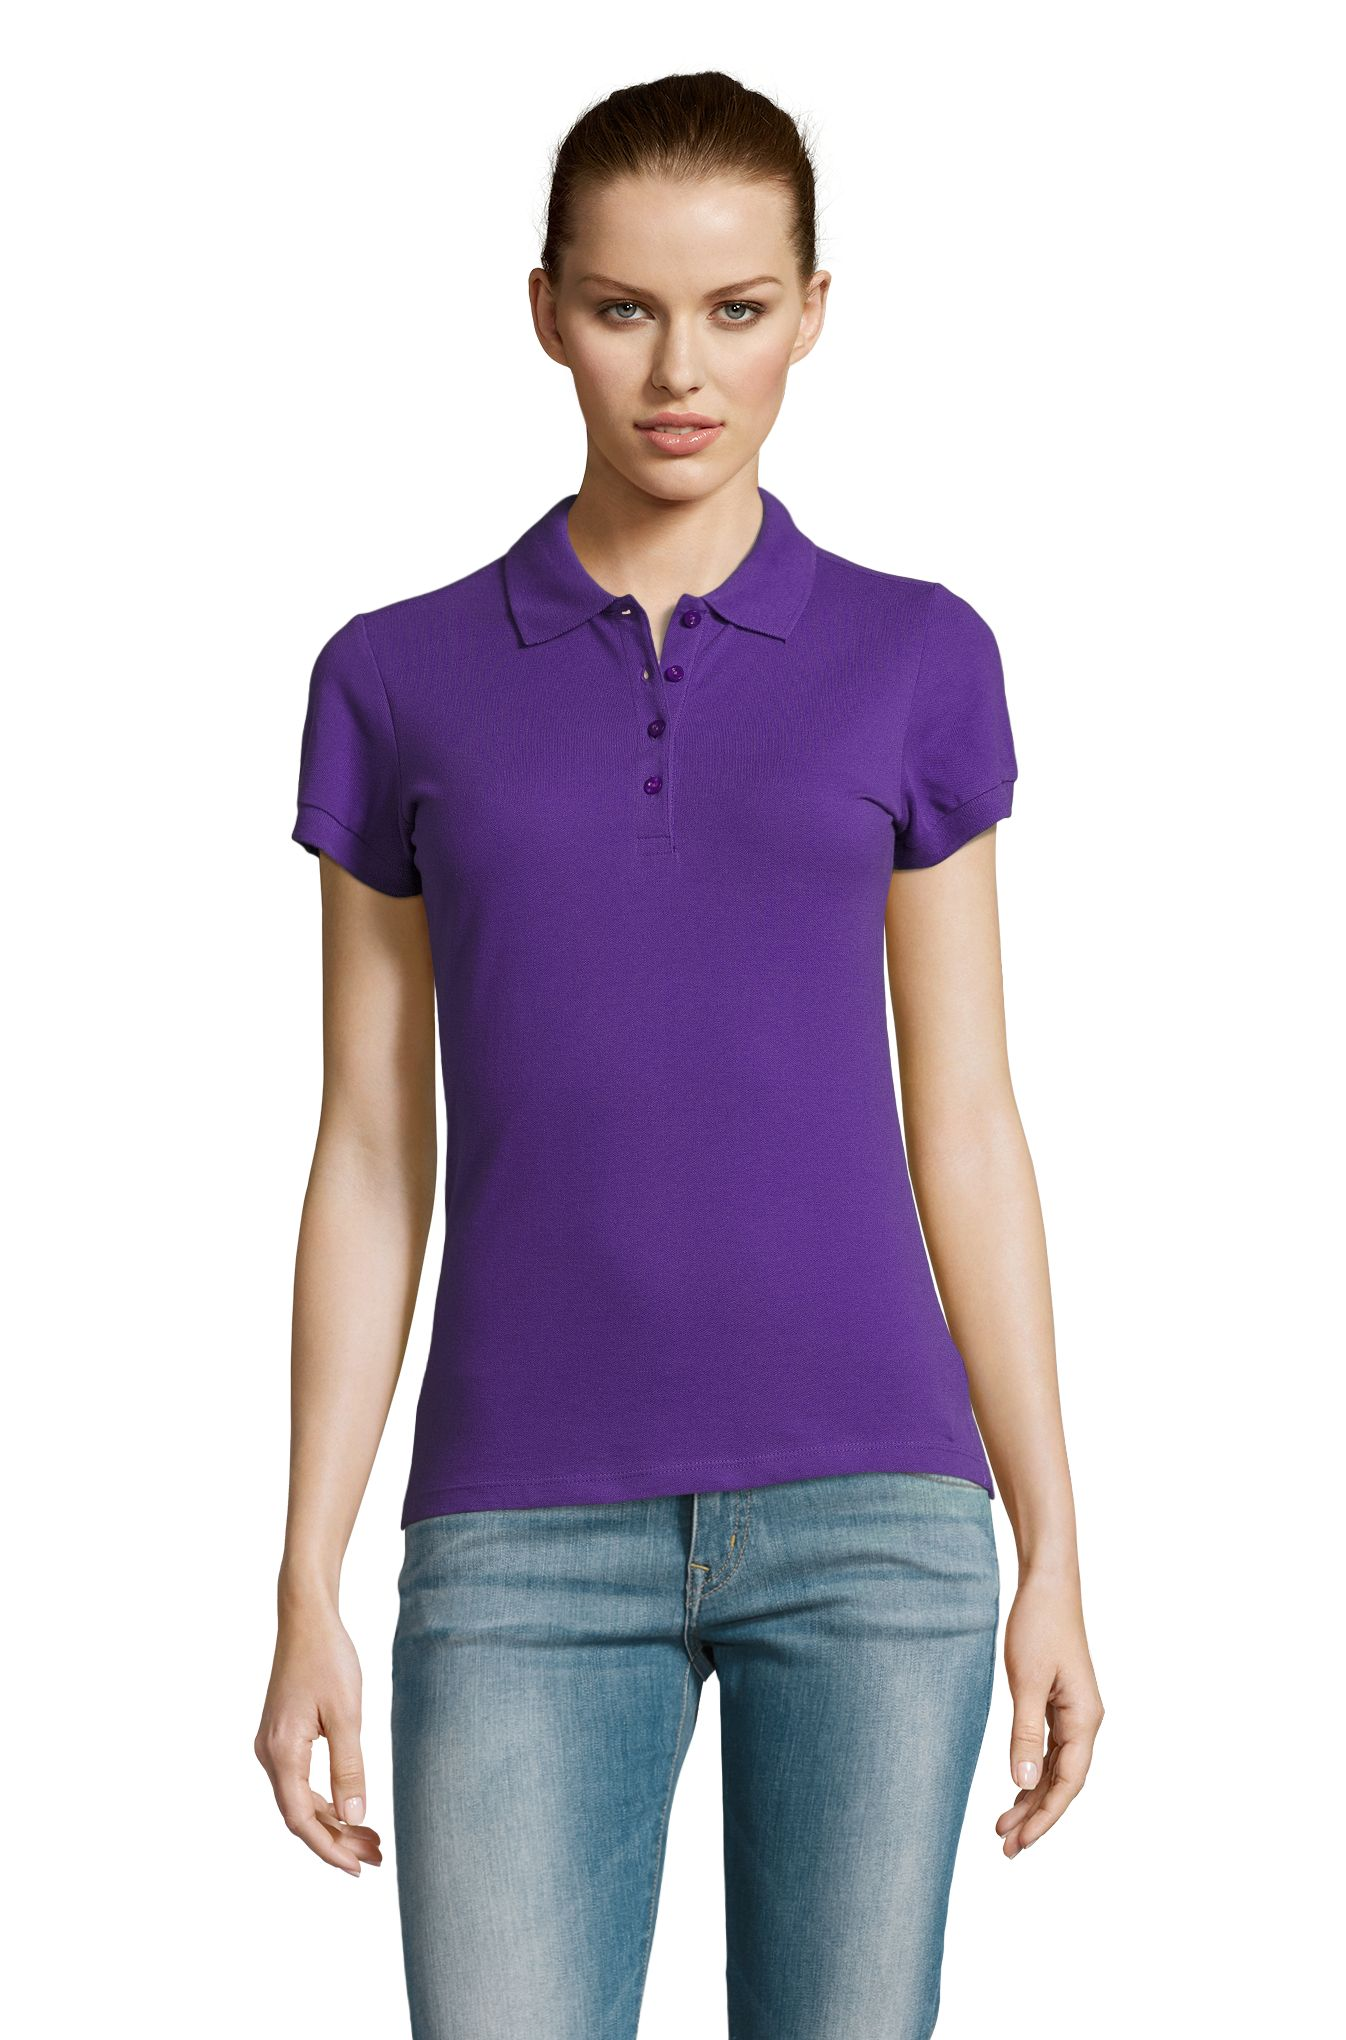 712 - Dark purple